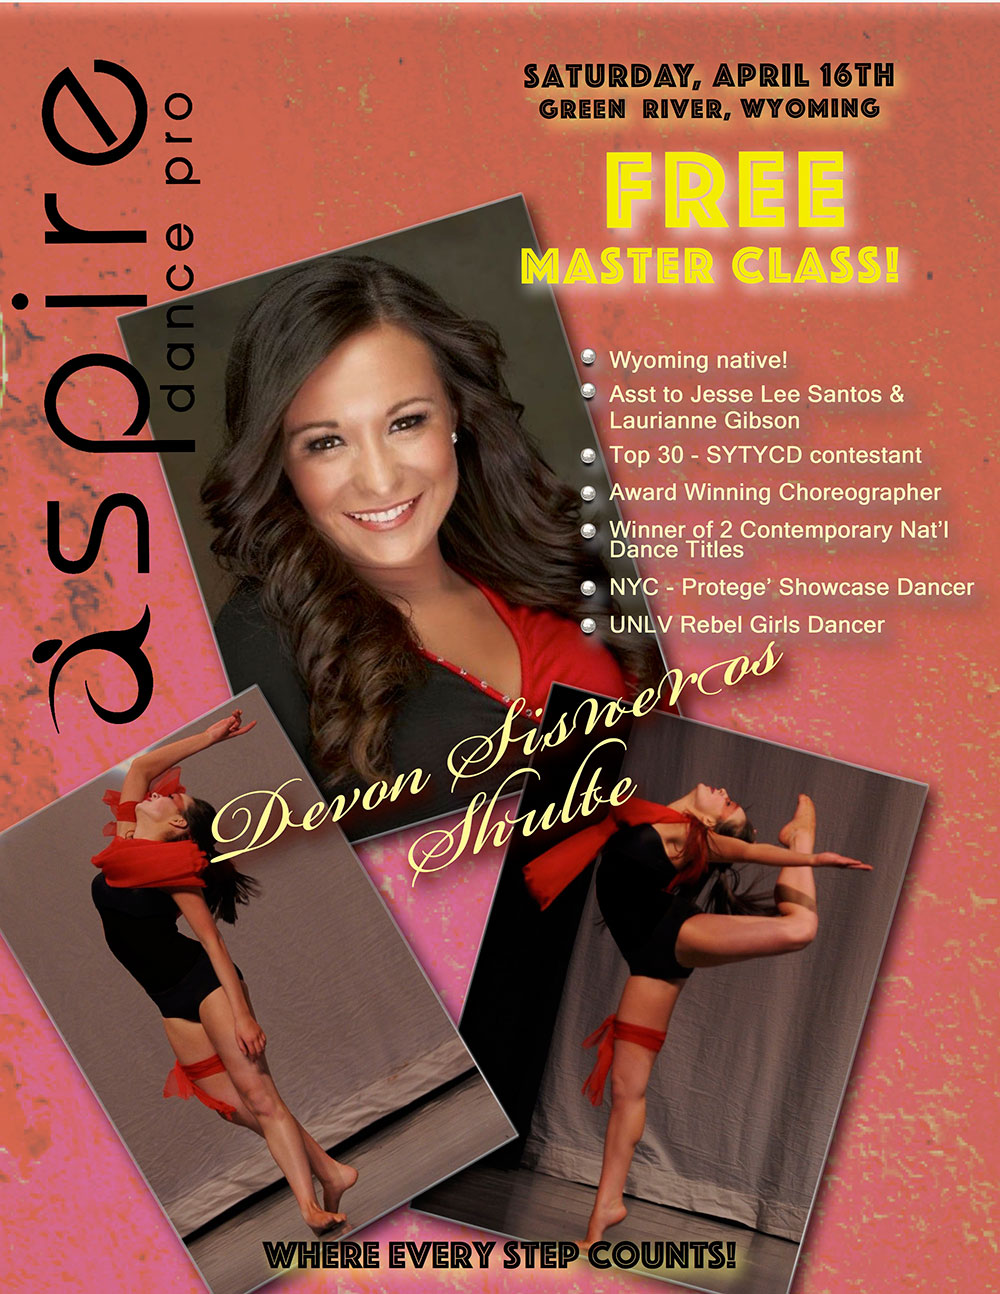 Devon Sisneros Schulte - Aspire Dance Pro Competitions Masterclass Instructor